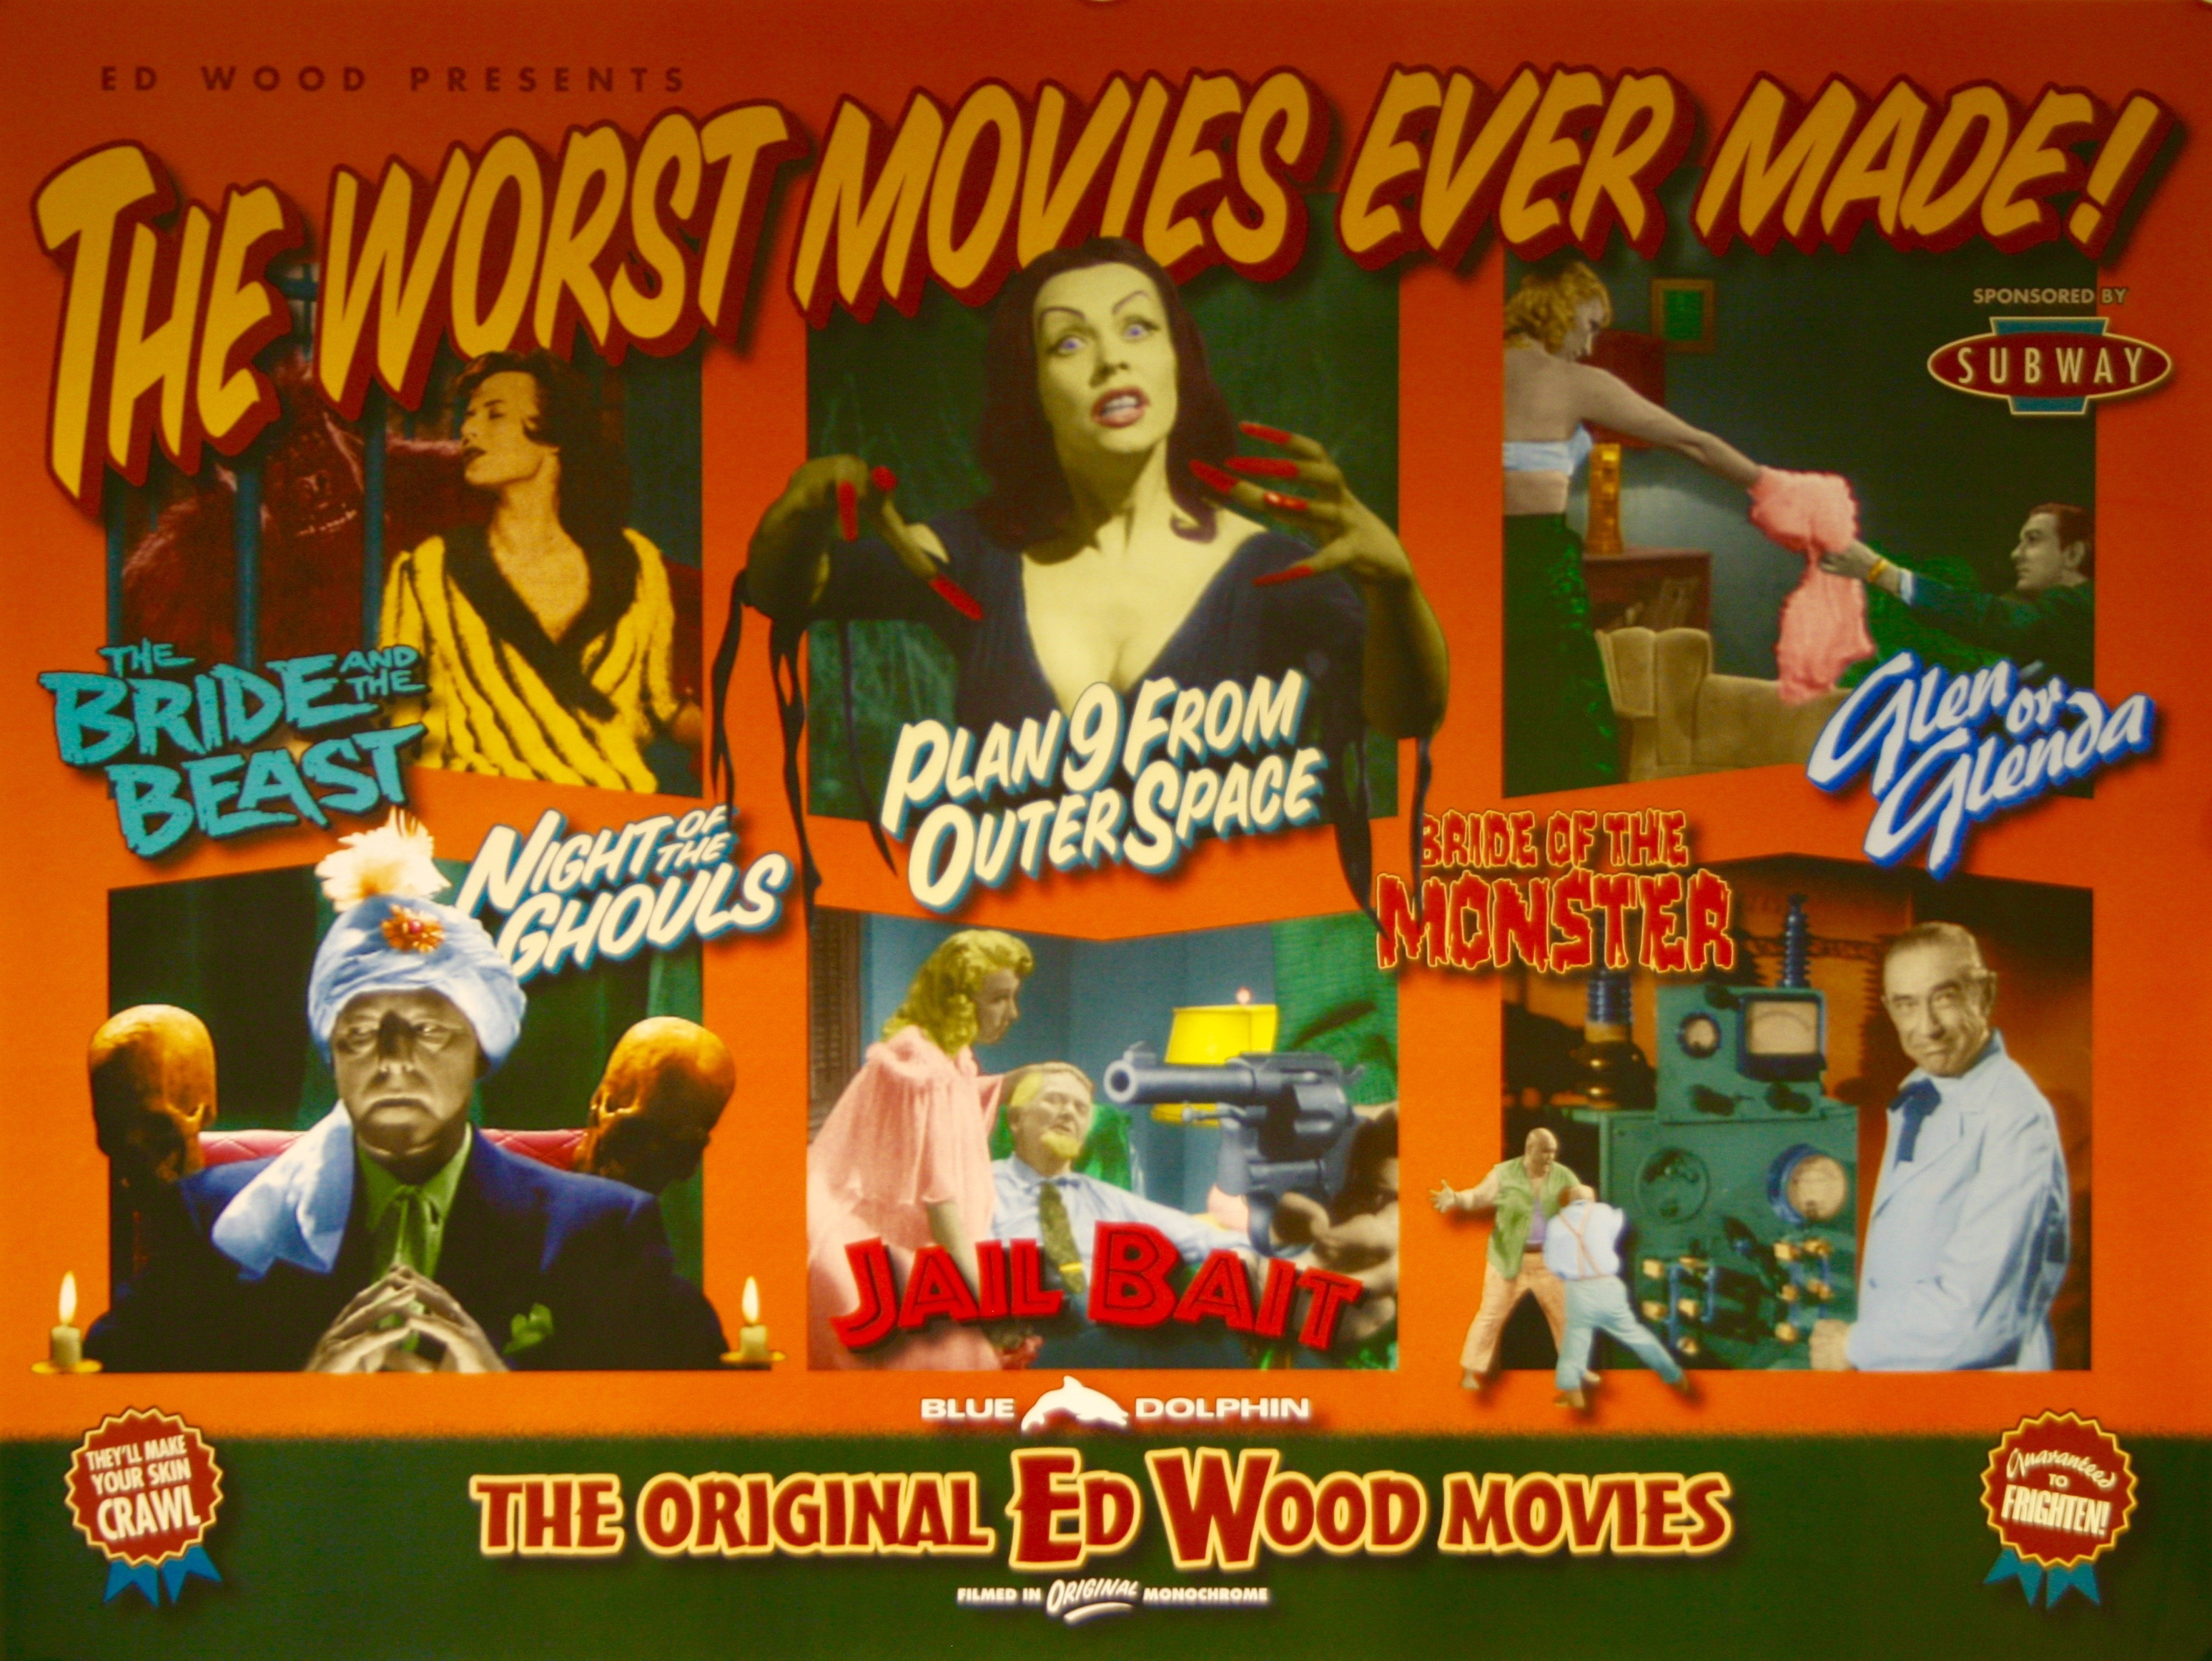 Ed Wood Presents The Worst Movies Ever Made - Vintage Movie Posters